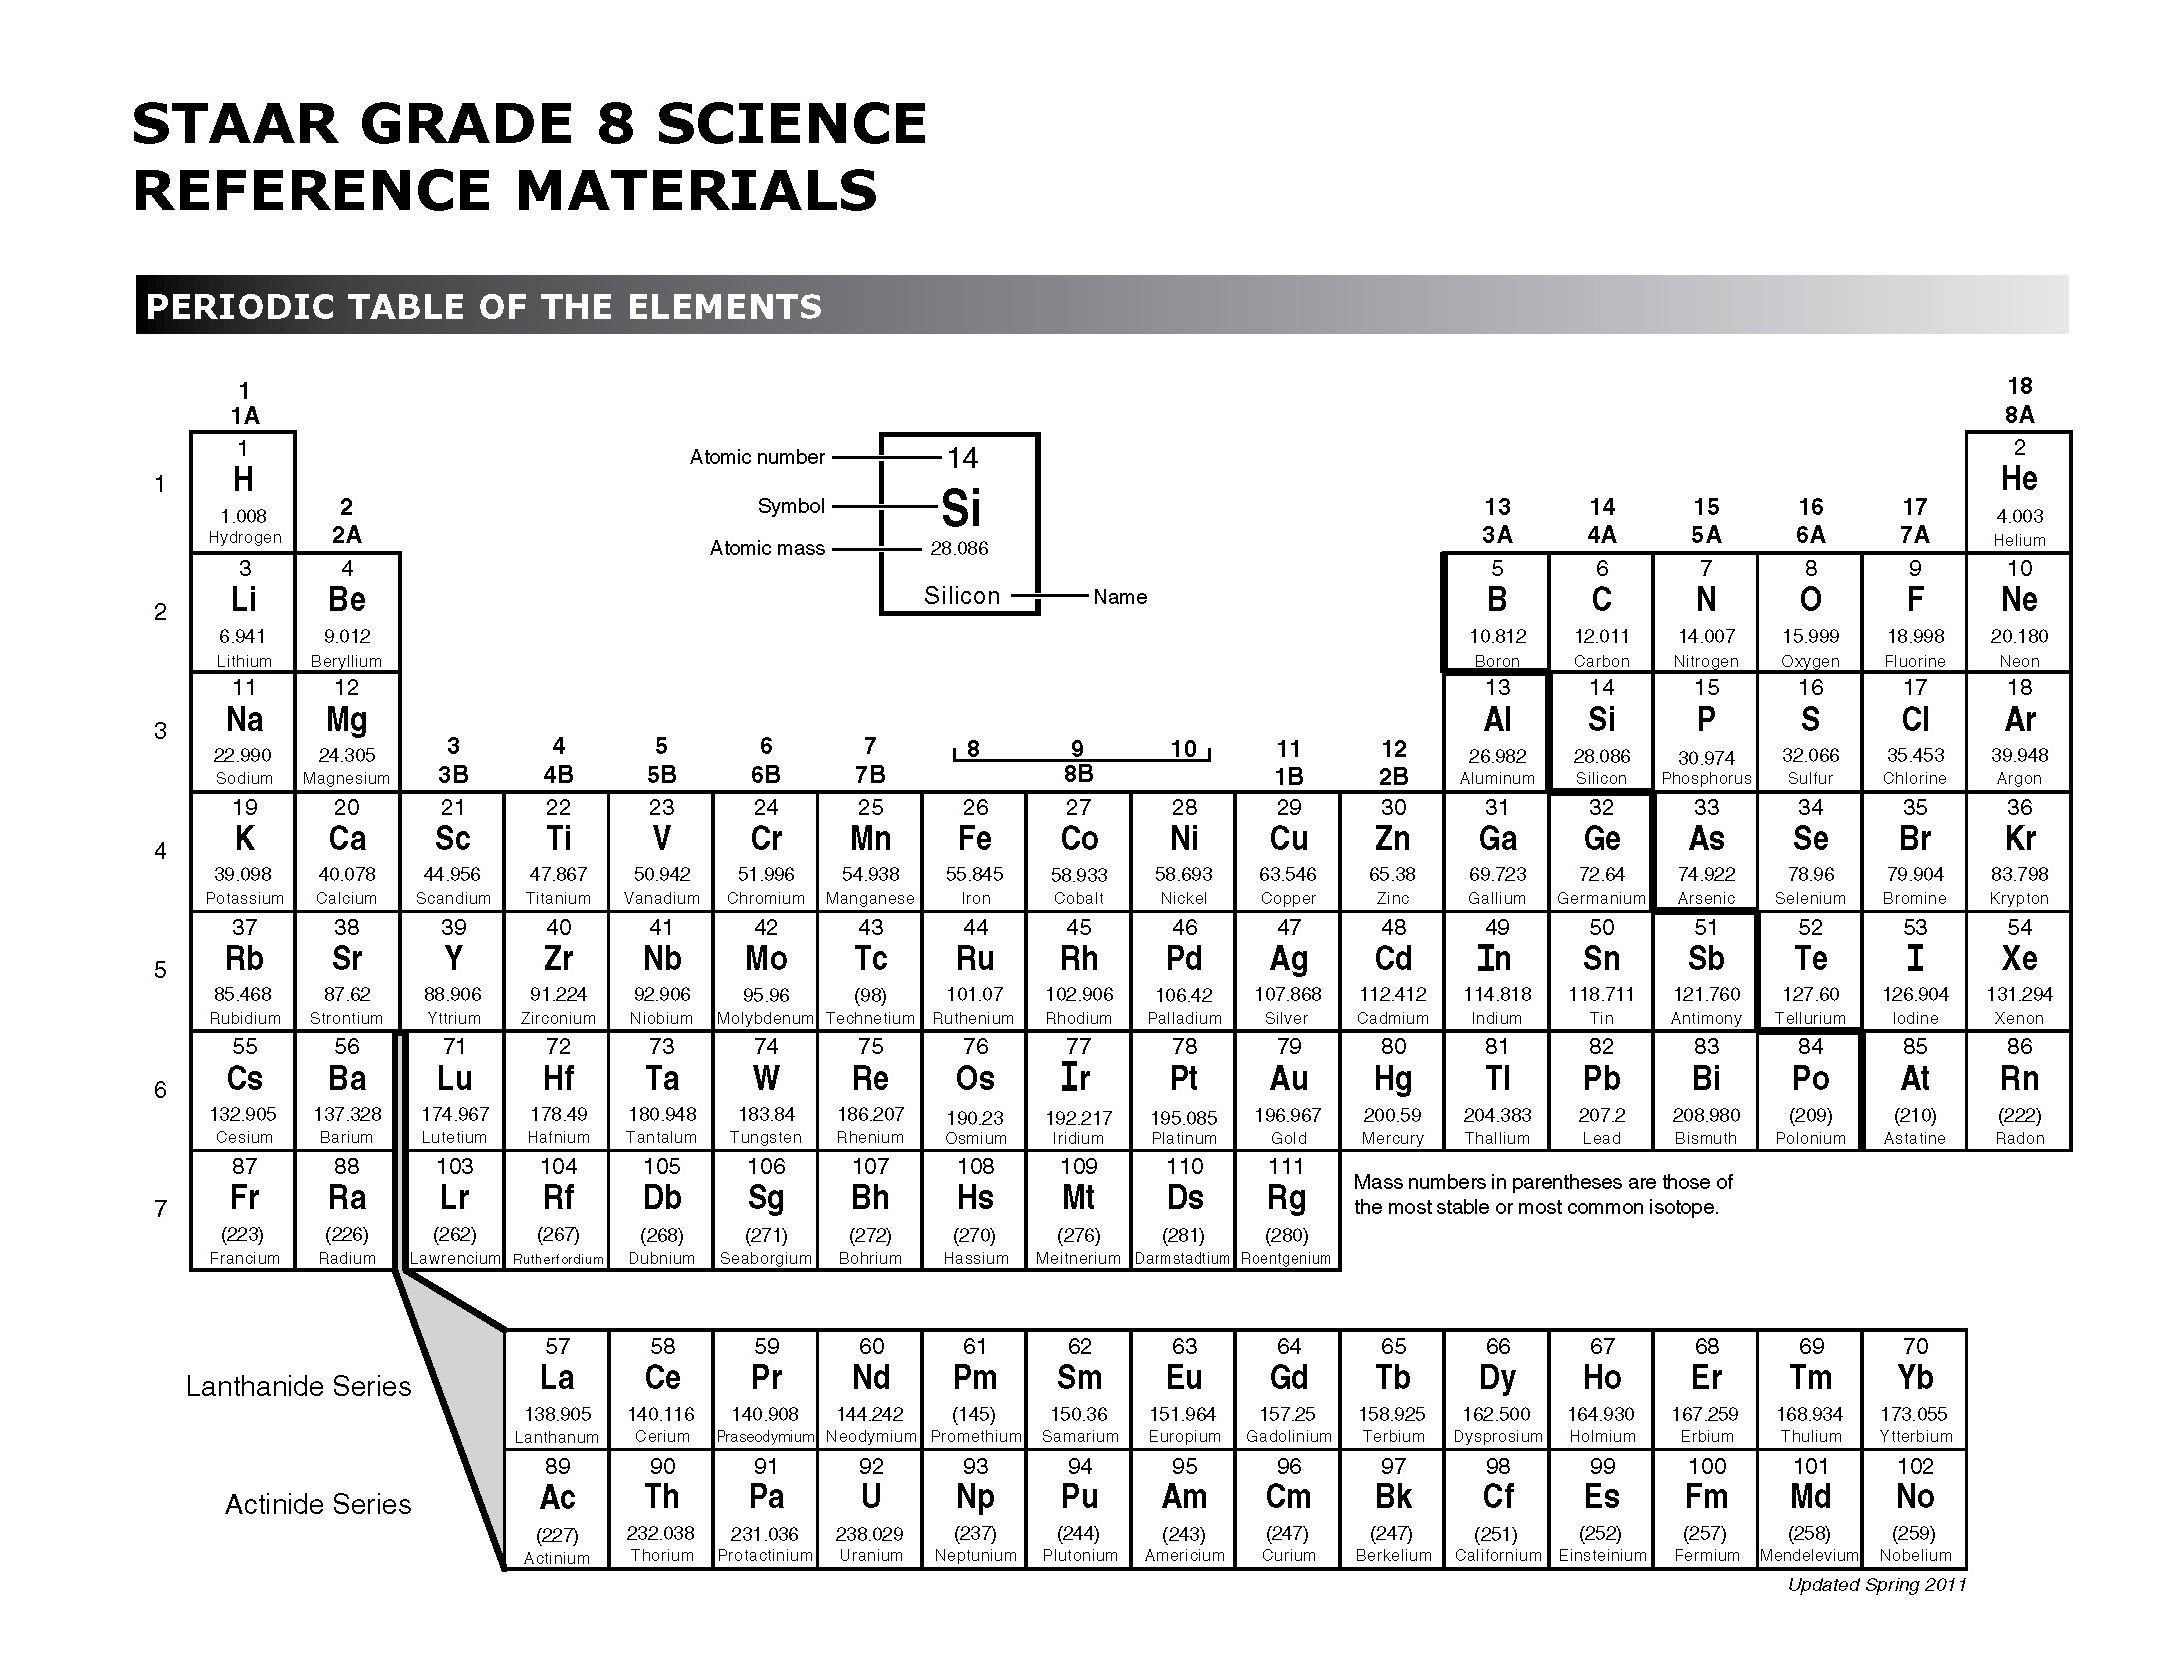 Worksheets On the Periodic Table the Arrangement Of Elements the Periodic Table